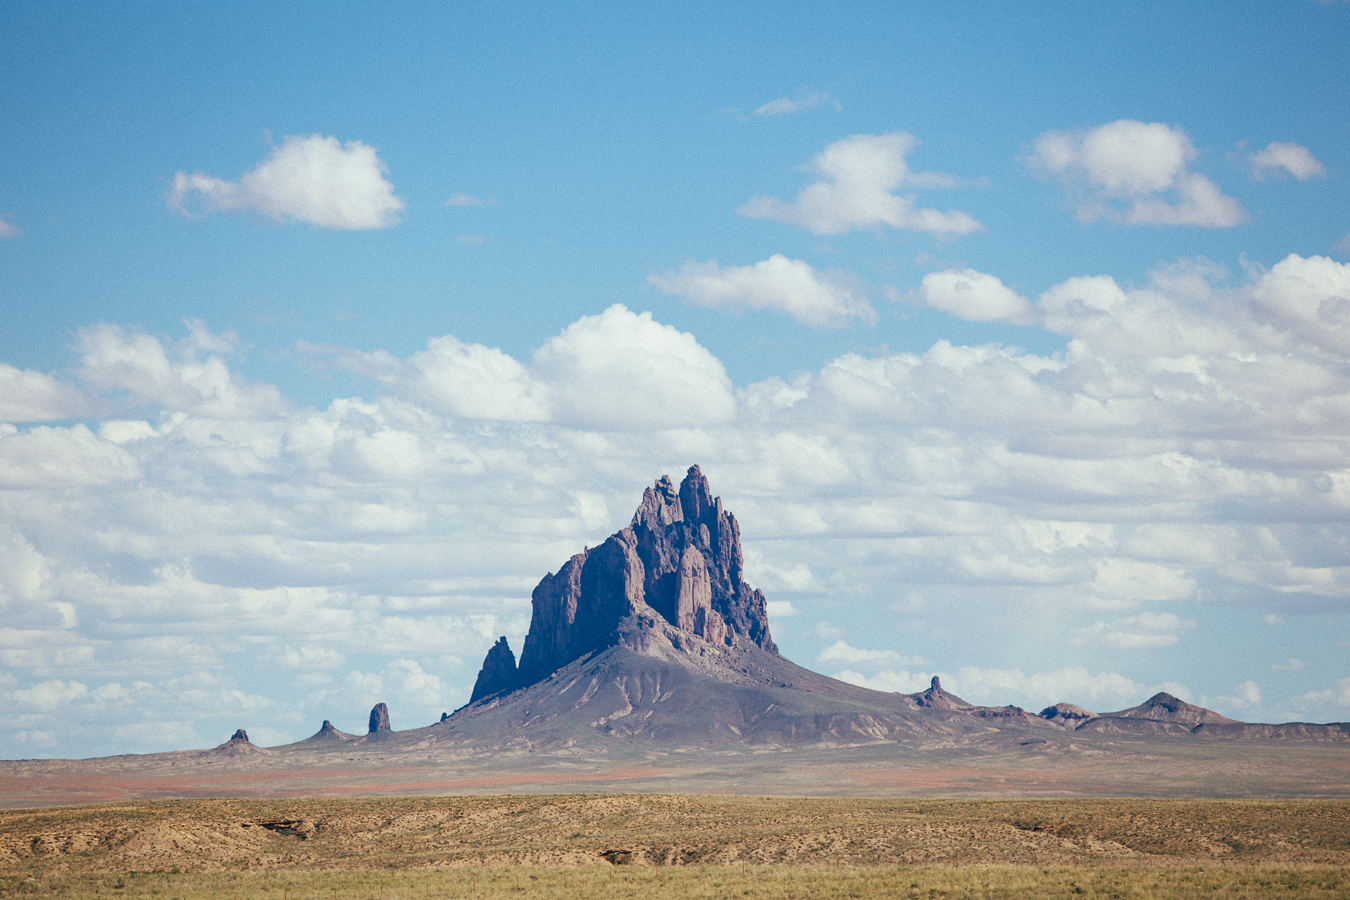 Shiprock. There areno rivers or ocean for days, so I could see how you could get this formation confused for a boat.